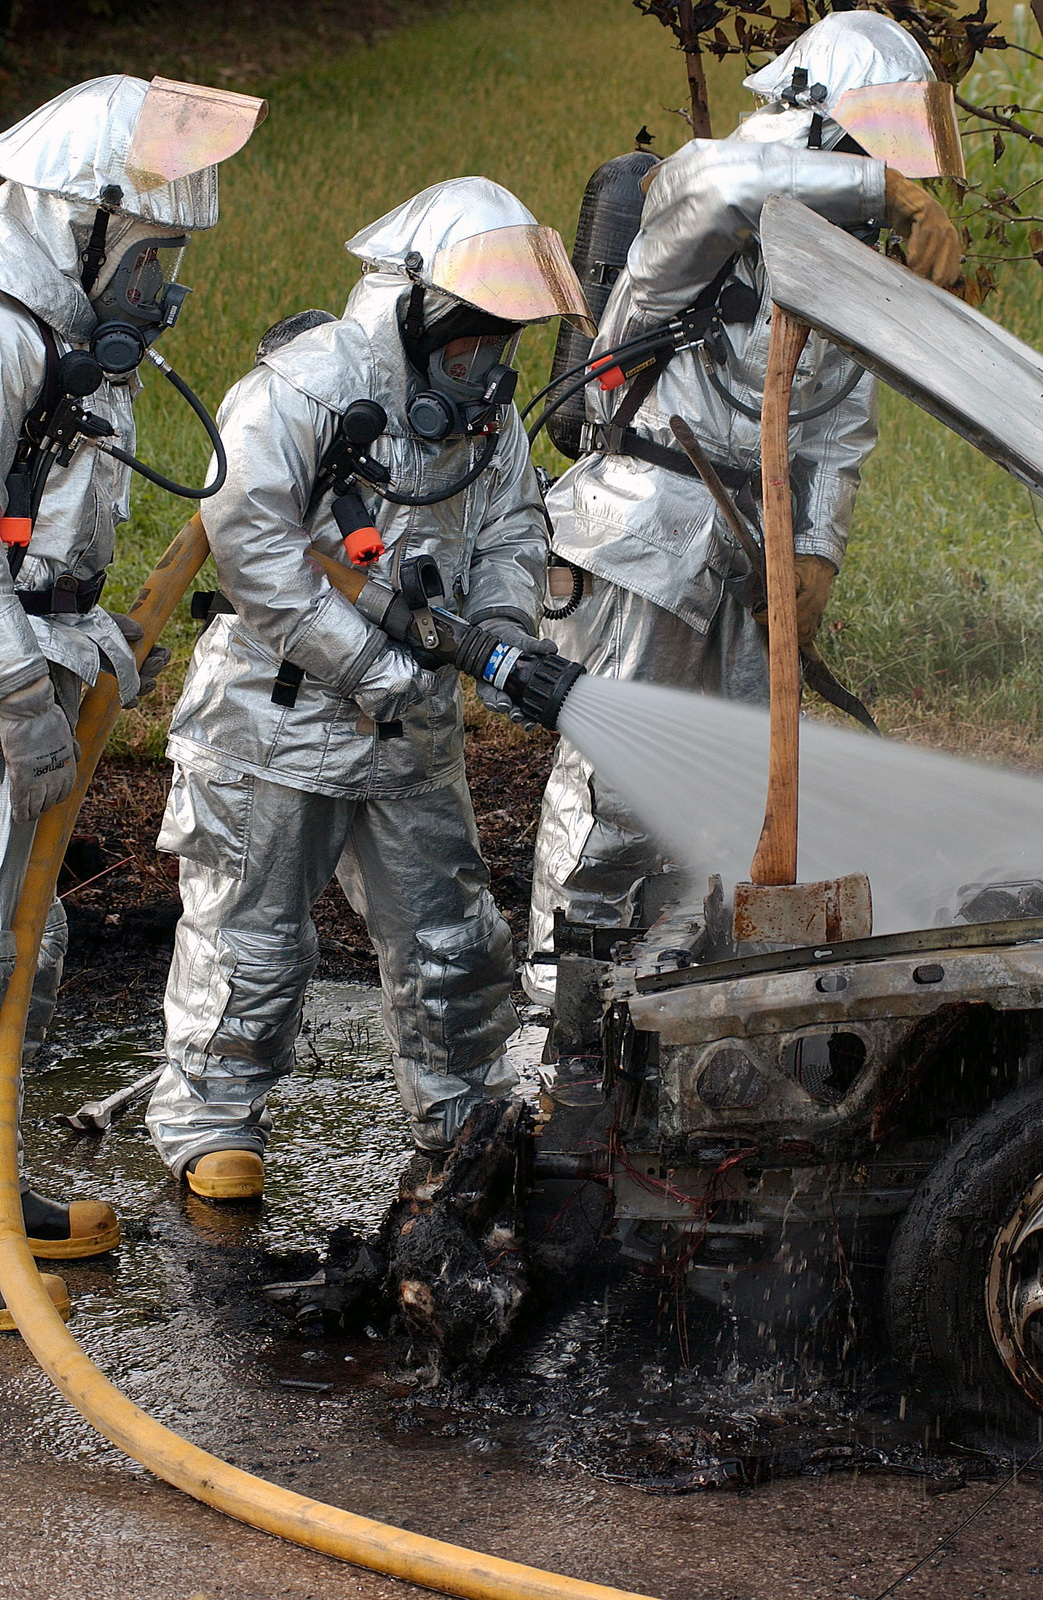 US Air Force (USAF) personnel assigned to the 31st Civil Engineer Squadron (CES), Fire Department, dressed in full proximity suits spray water on the personal vehicle belonging to US Air Force (USAF) AIRMAN First Class (A1C) Khalio Borum at Aviano Air Base (AB), Italy. The vehicle caught fire after experiencing mechanical difficulties